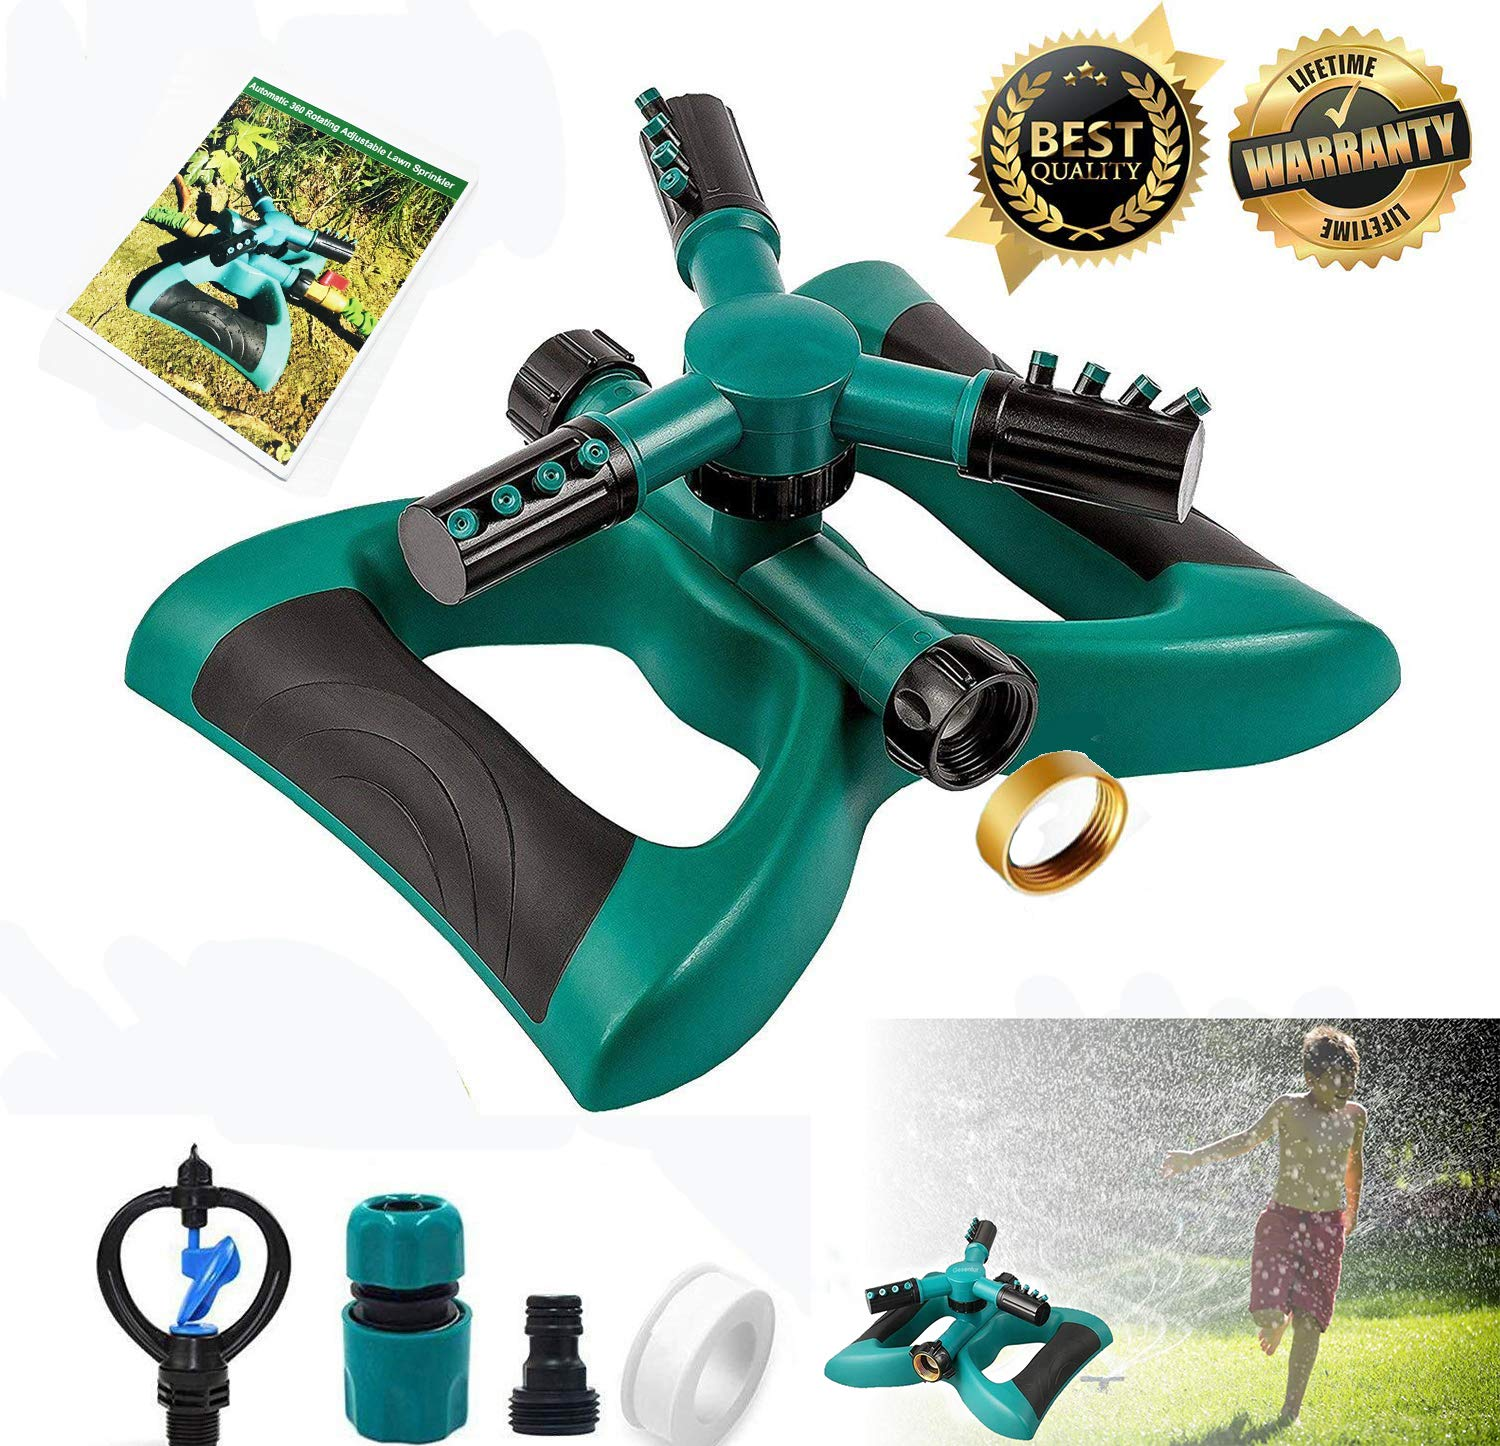 Cybbo Garden Sprinkler, 360° Rotating Lawn Sprinkler a Large Area Coverage - Adjustable, Weighted Gardening Watering System